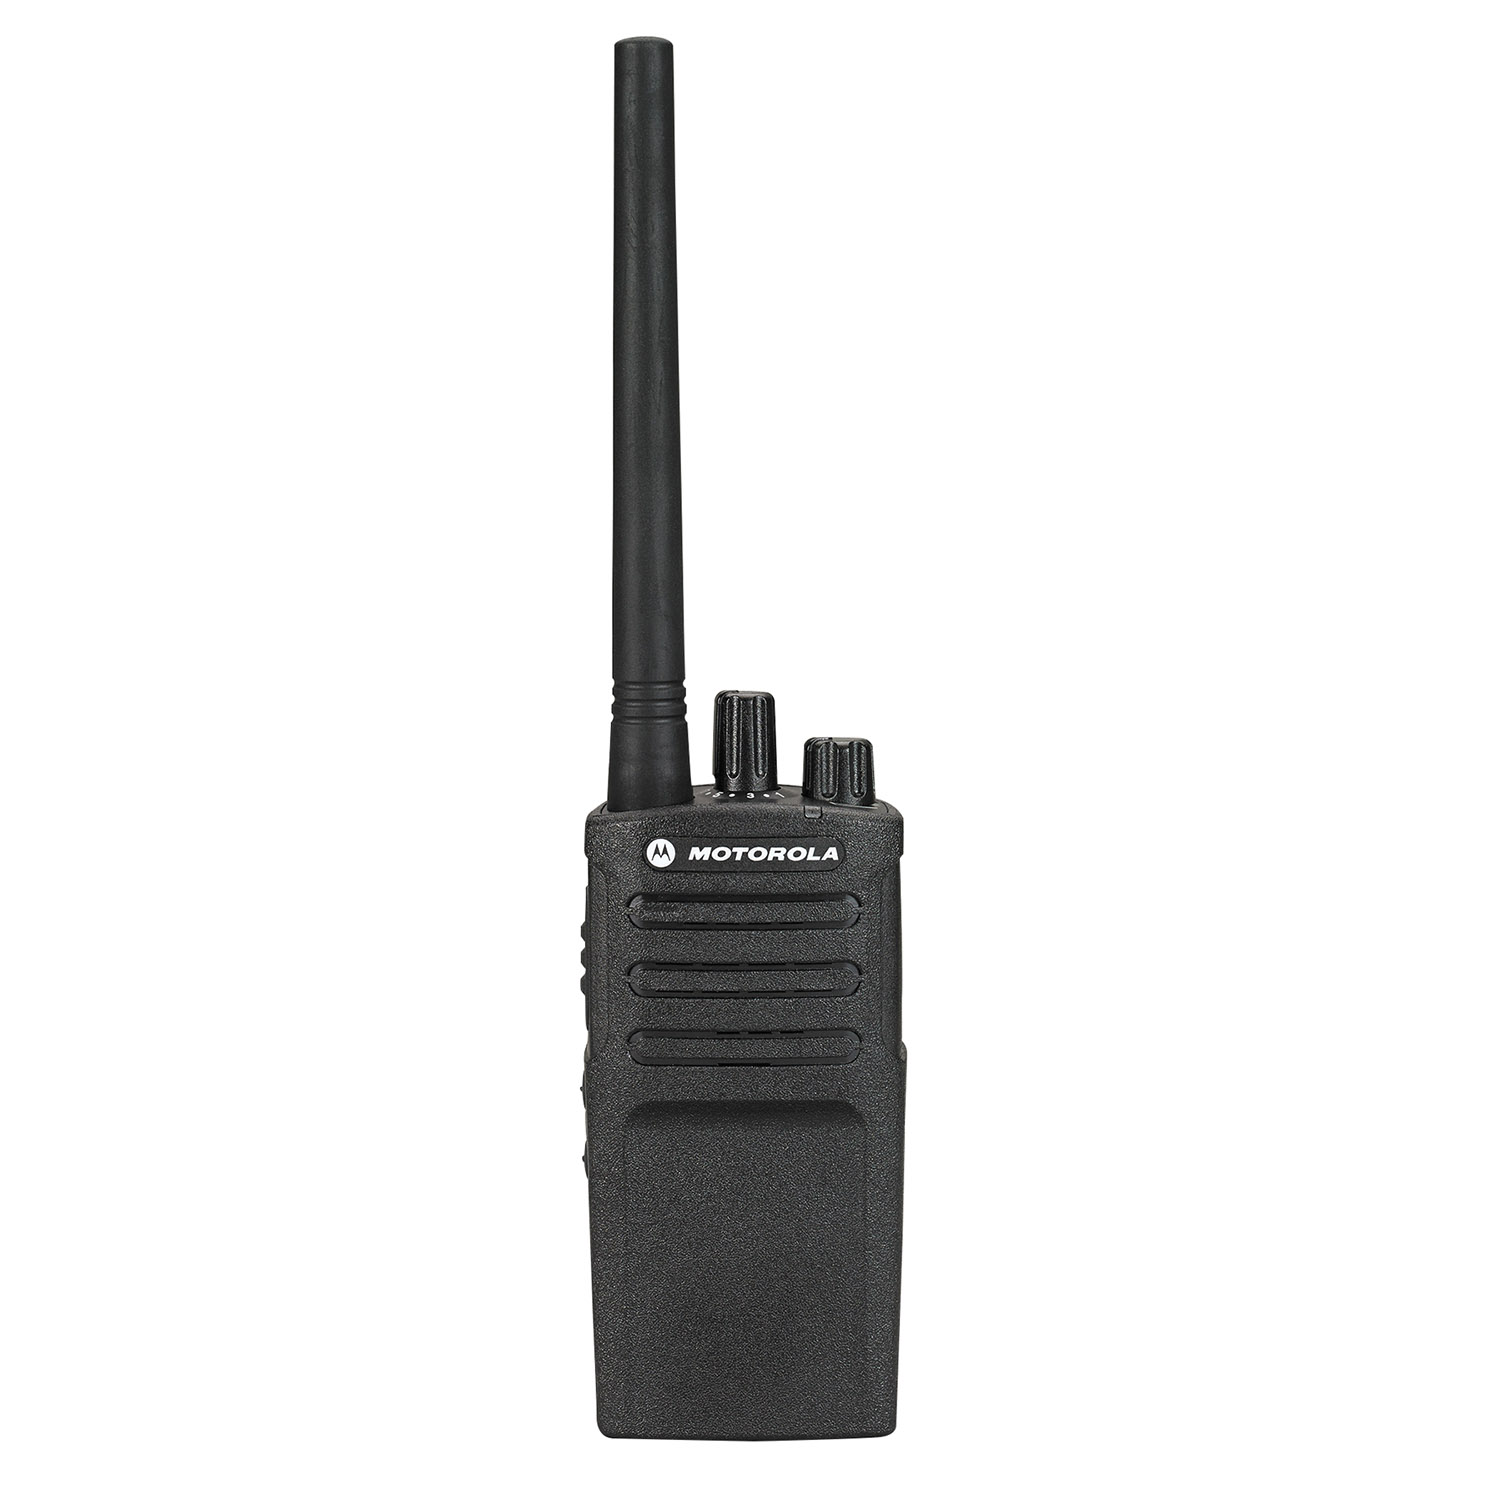 Motorola RMV2080 VHF 8 Channel Radio